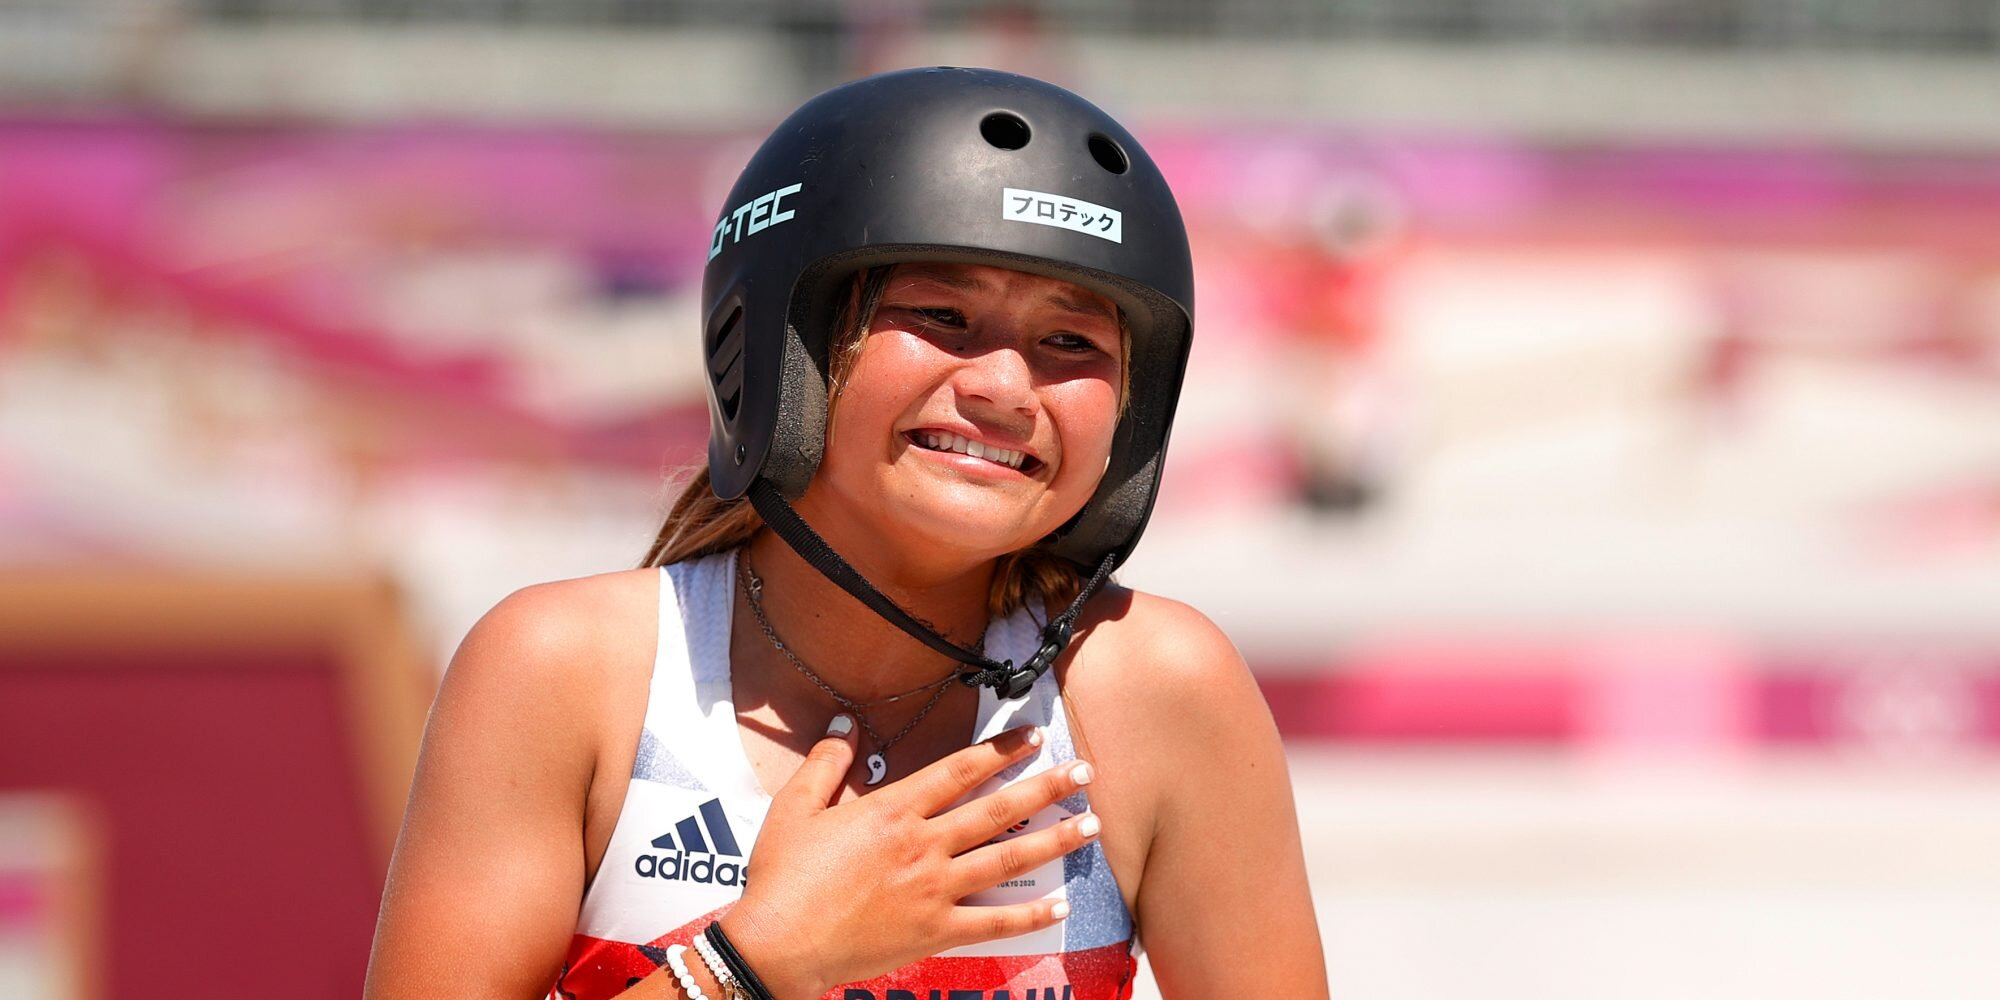 Calif. Native (and DWTS: Juniors Champ) Sky Brown, 13, Wins Bronze in Women's Skateboarding Park